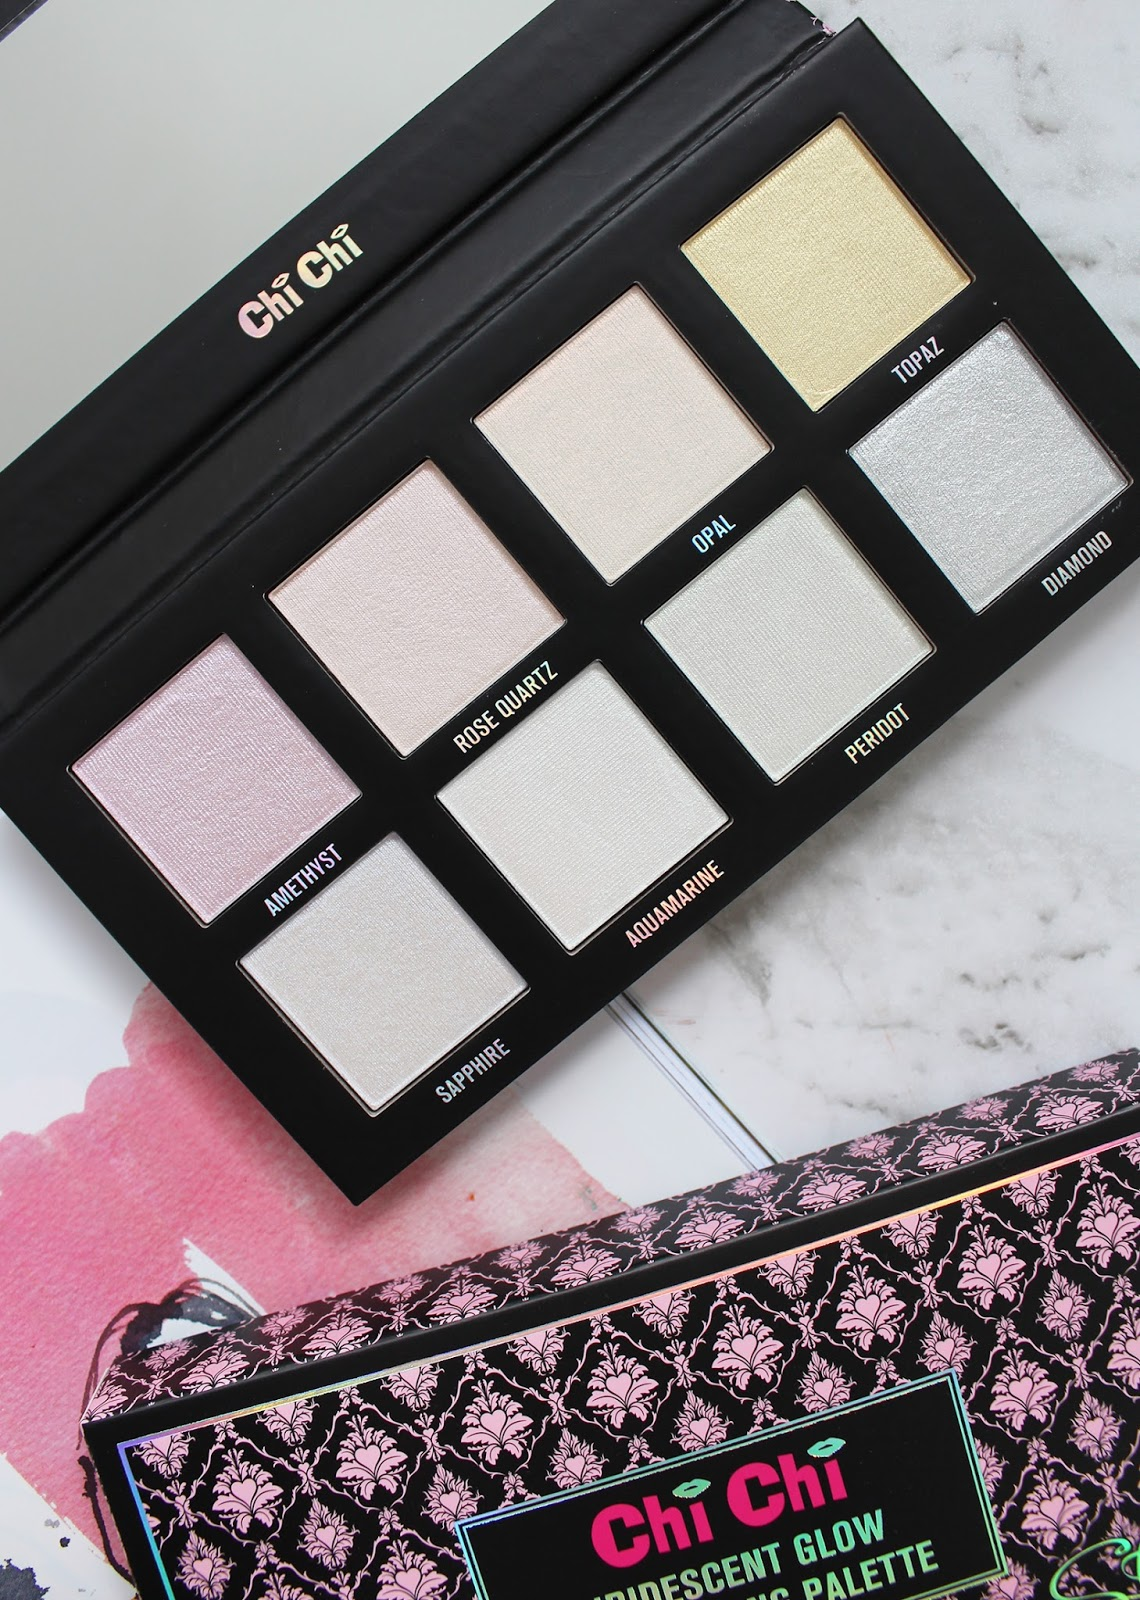 CHI CHI | Iridescent Glow Highlighting Palette - Review + Swatches - CassandraMyee